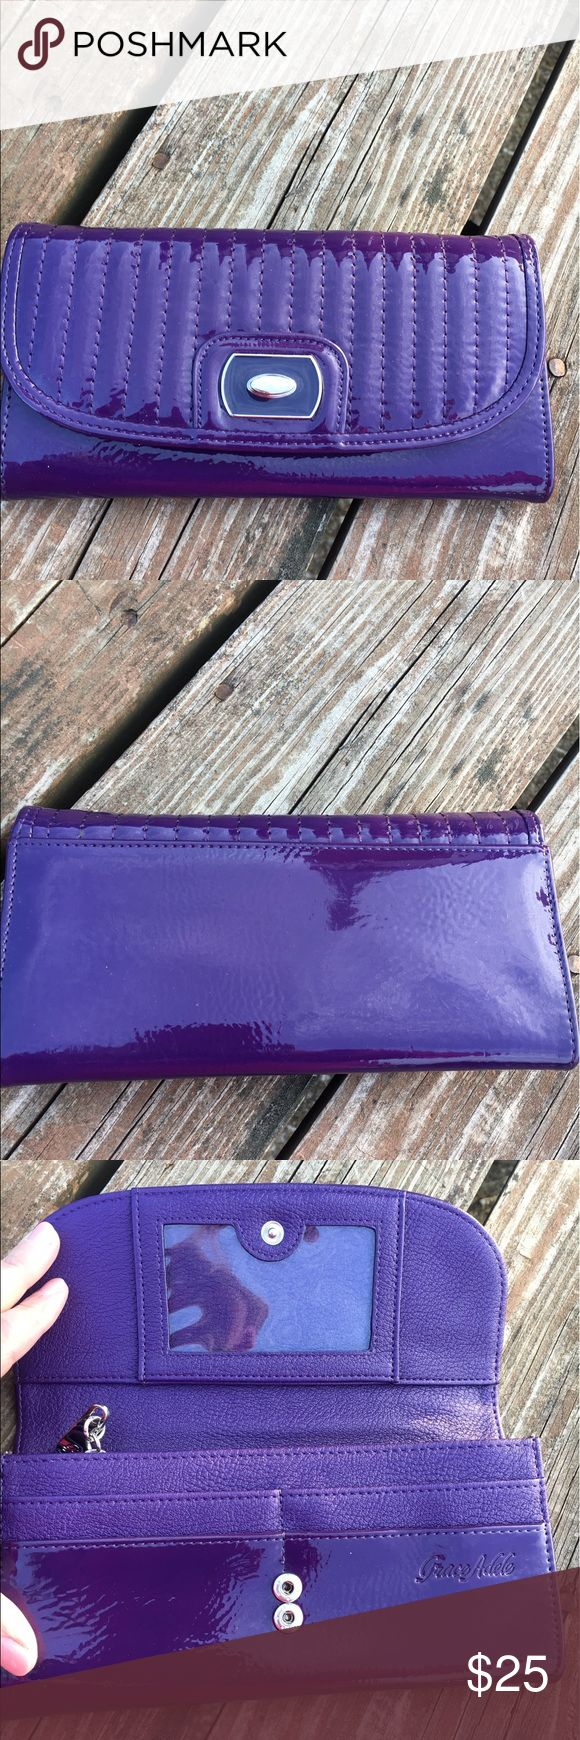 Grace Adele wallet New purple wallet. Tons of compartments! 💜 Bags Wallets